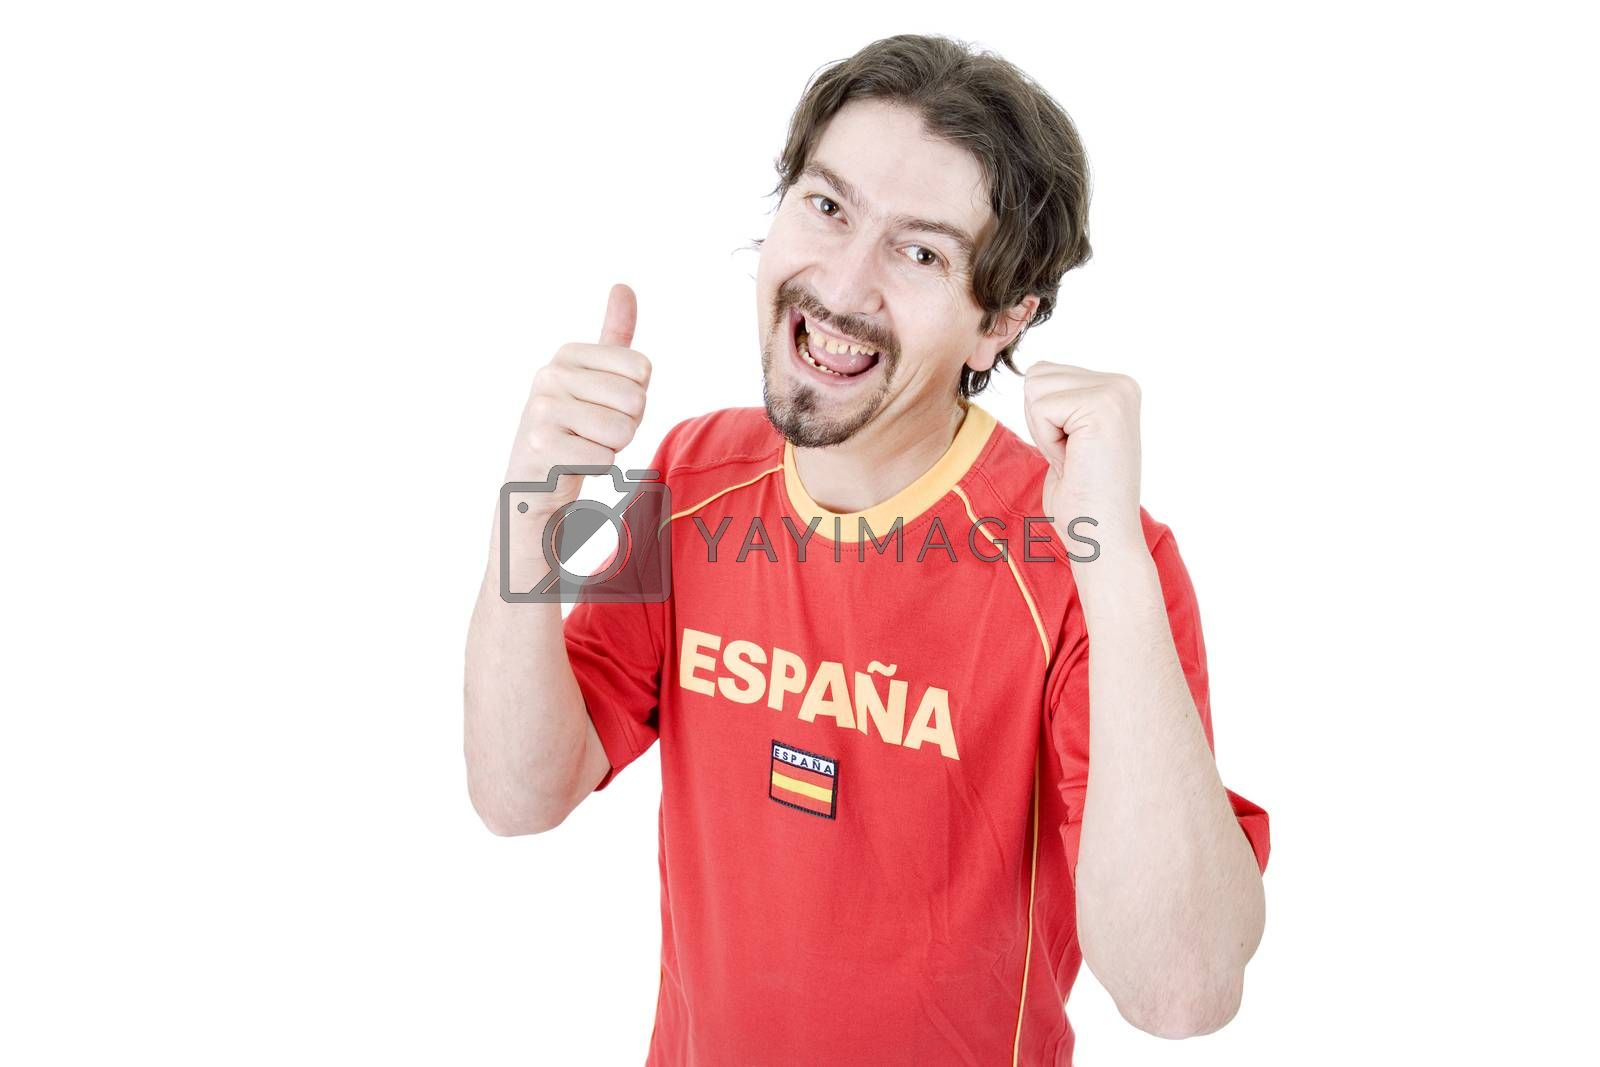 Royalty free image of spanish fan by zittto